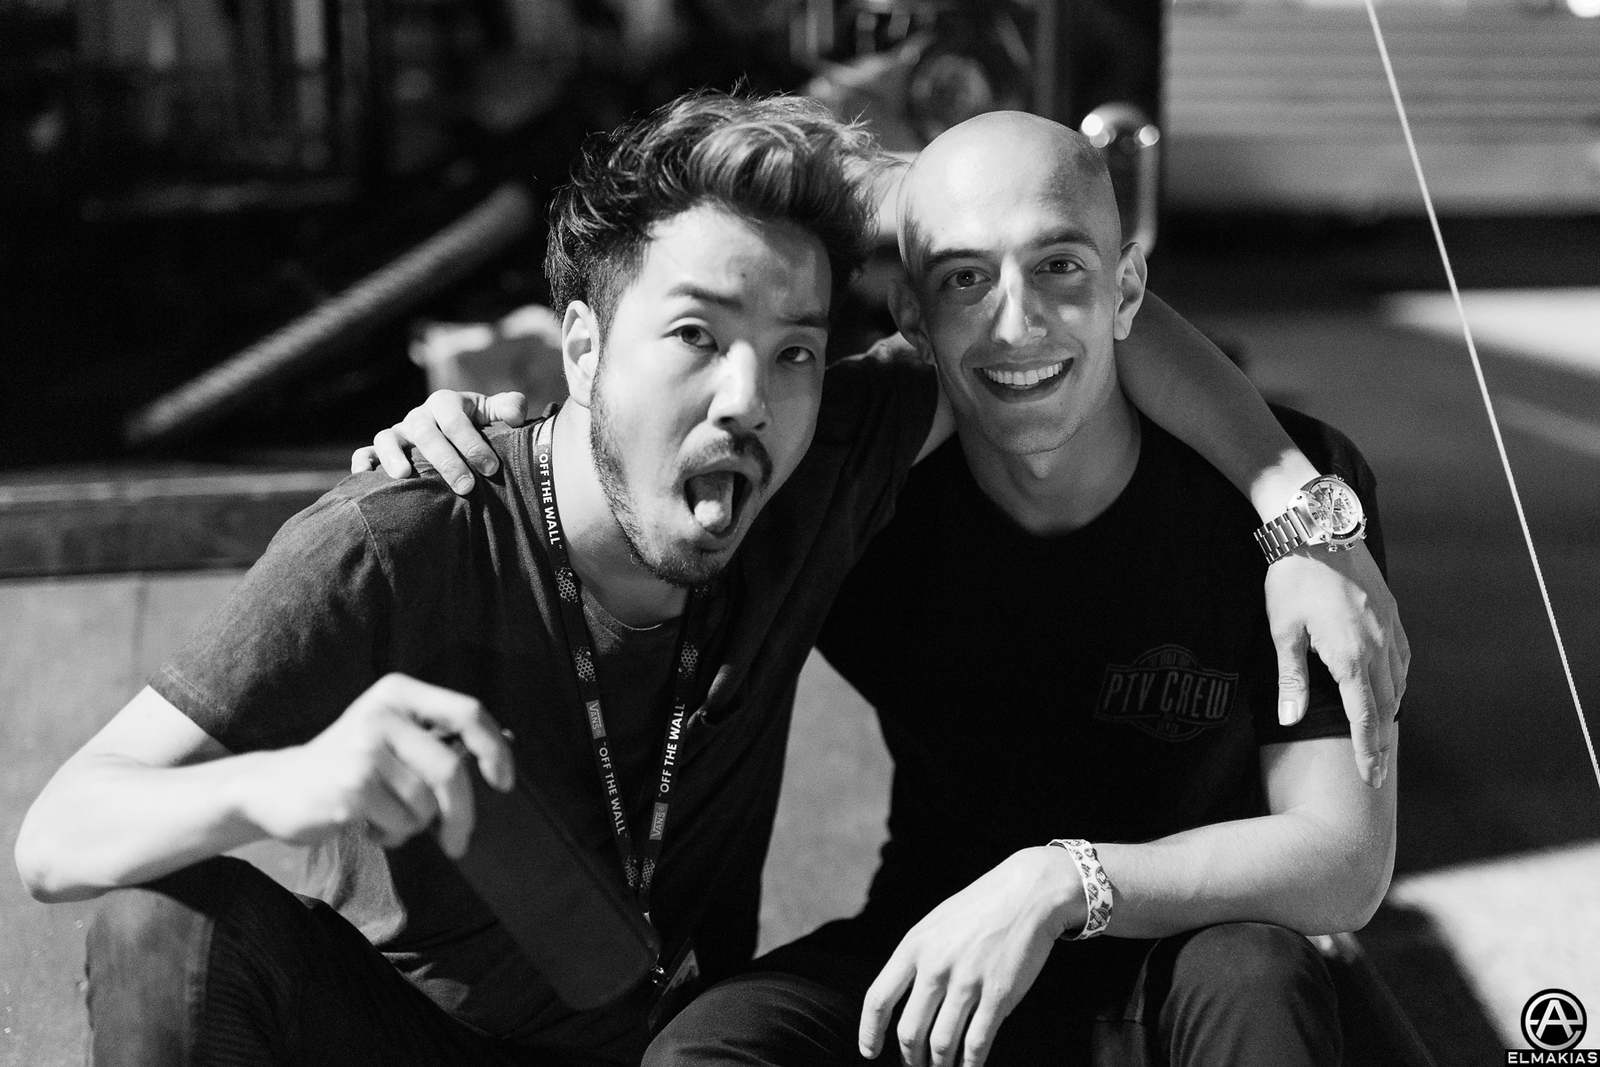 Kenta Koie of Crossfaith & Adam Elmakias at Vans Warped Tour 2015 by Adam Elmakias